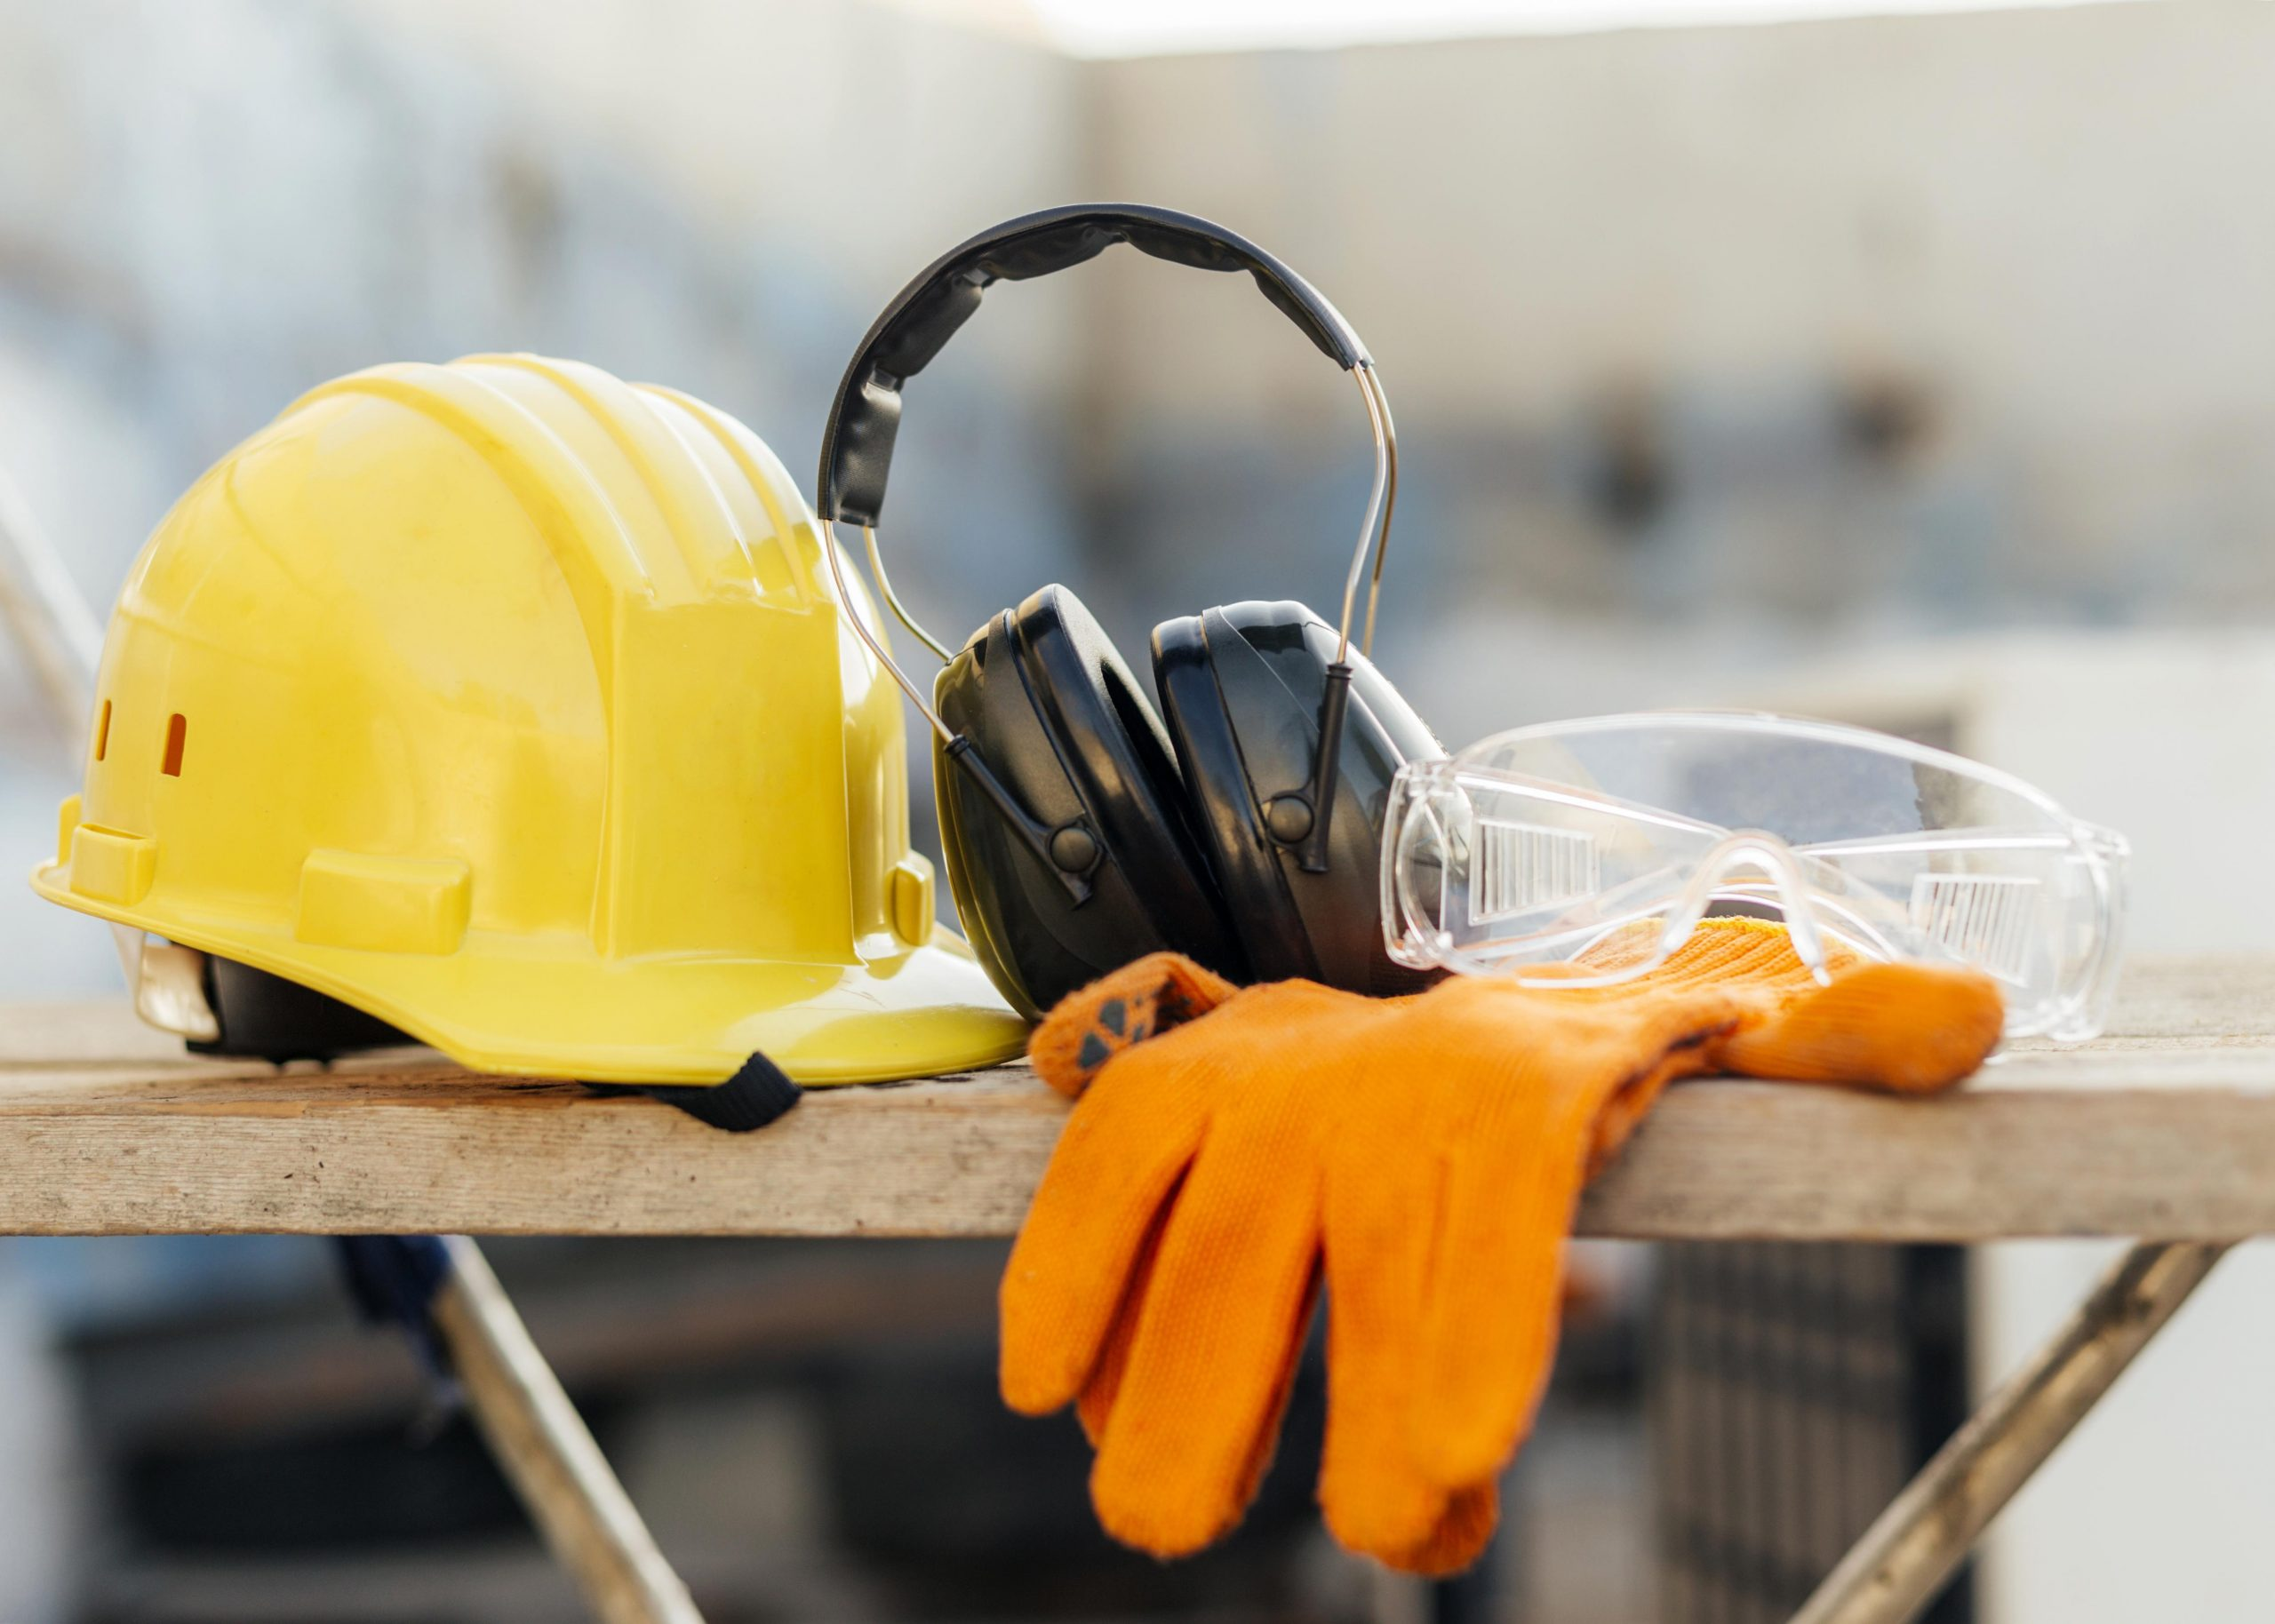 front-view-protective-glasses-with-hard-hat-headphones